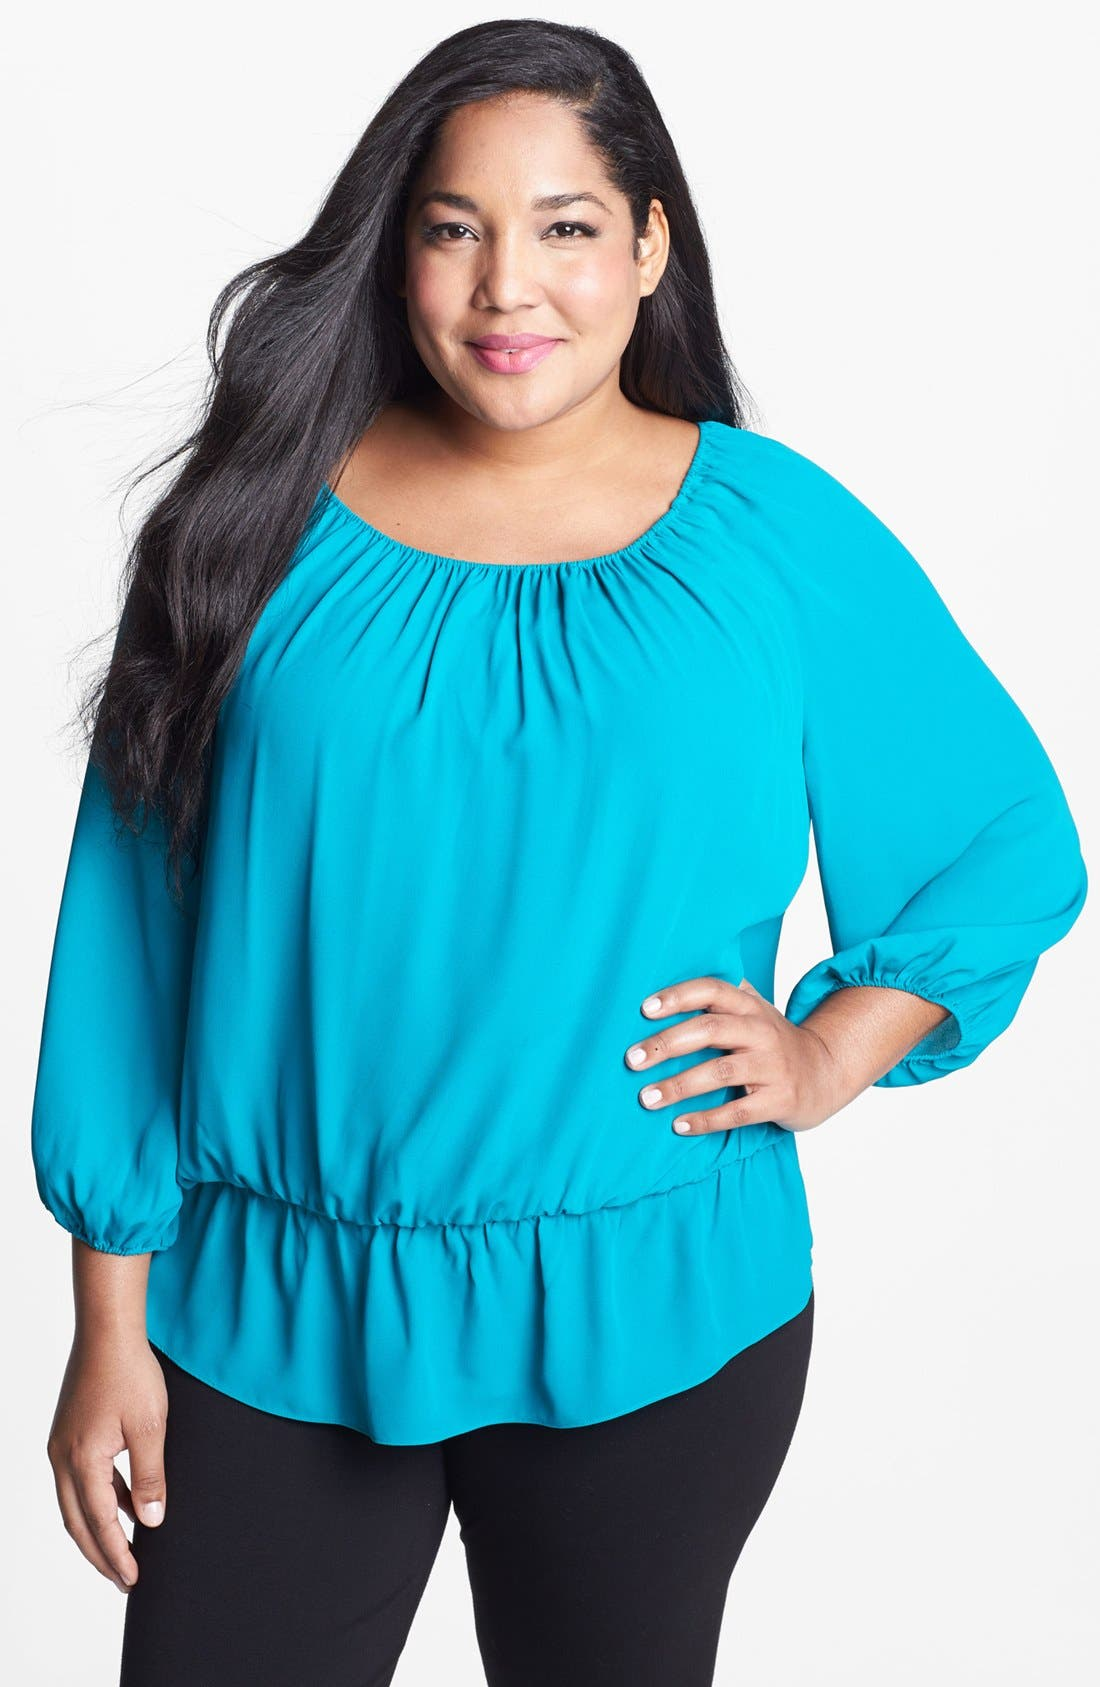 Alternate Image 1 Selected - Vince Camuto Peasant Top (Plus Size)